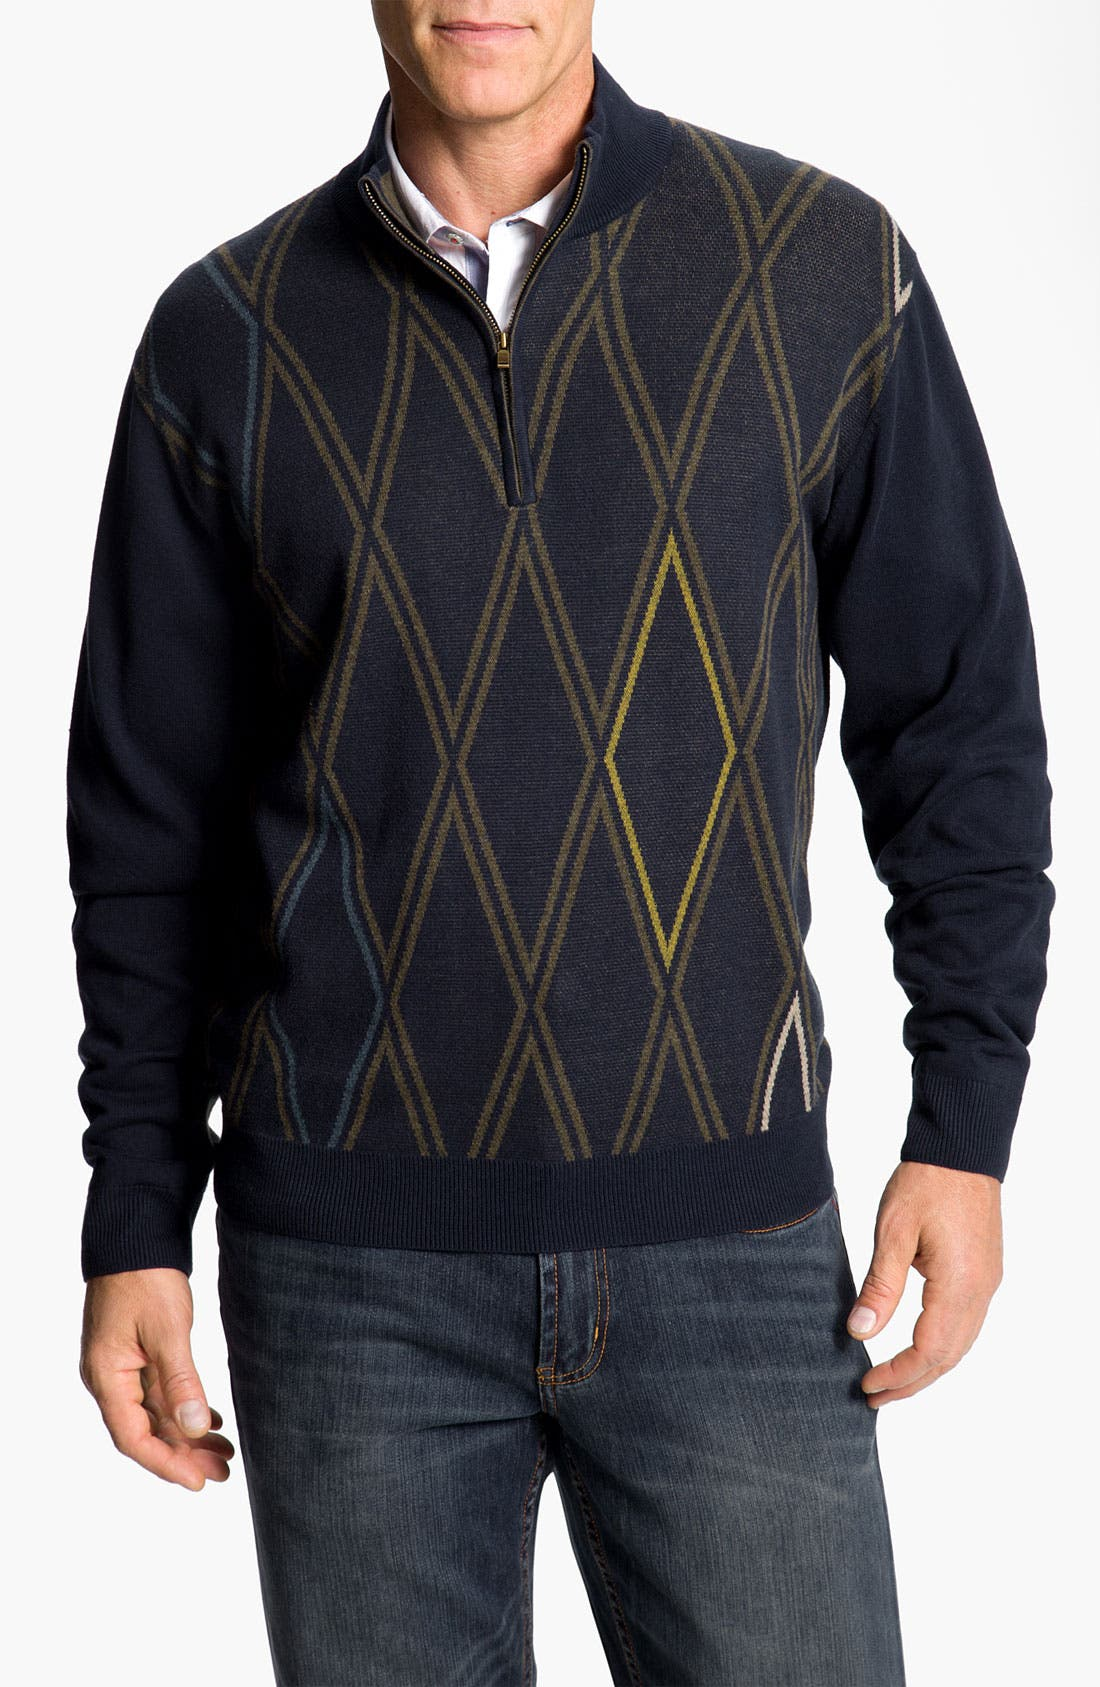 Alternate Image 1 Selected - Cutter & Buck 'Gorge' Half Zip Sweater (Big & Tall) (Online Exclusive)